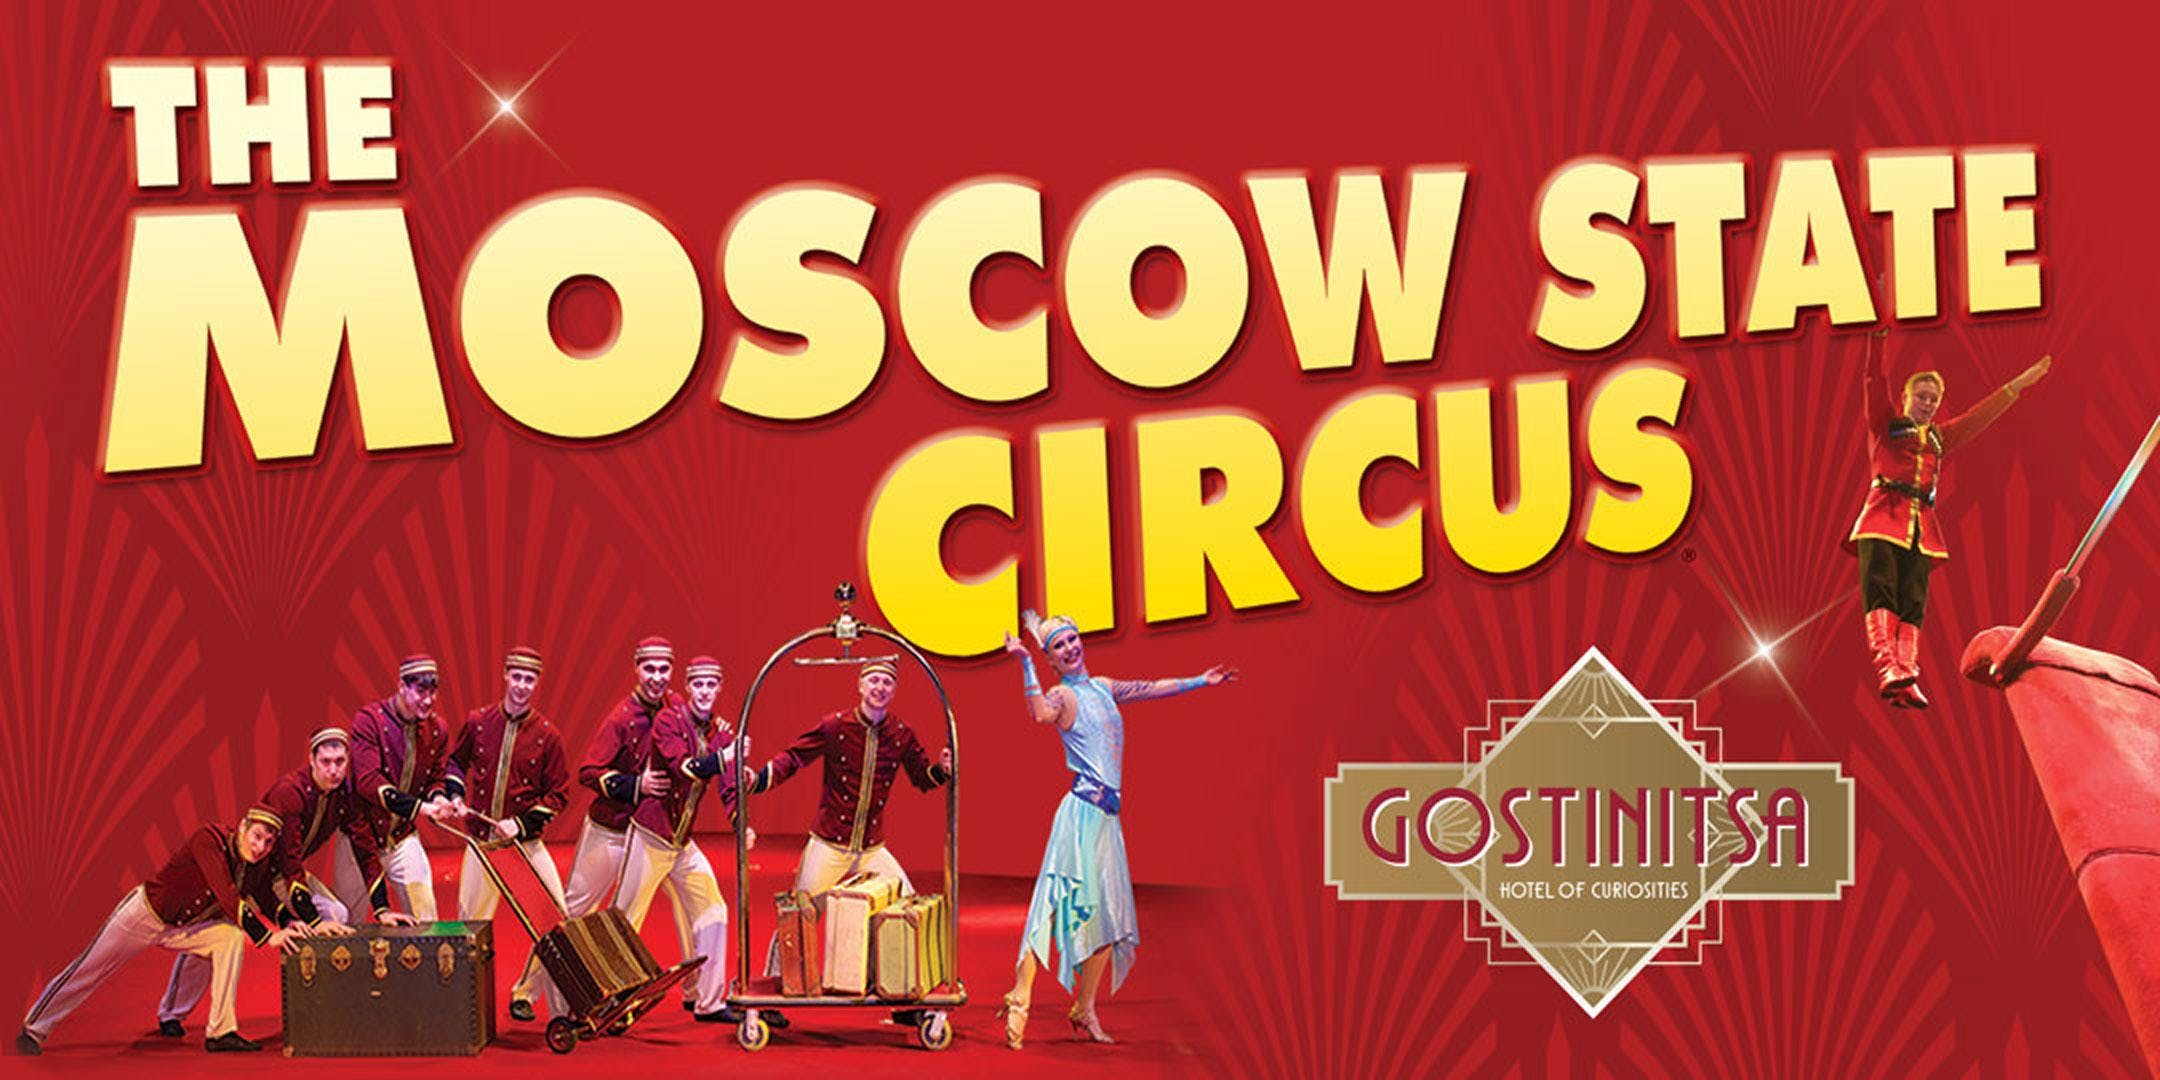 Moscow State Circus Presents GOSTINISTA - New